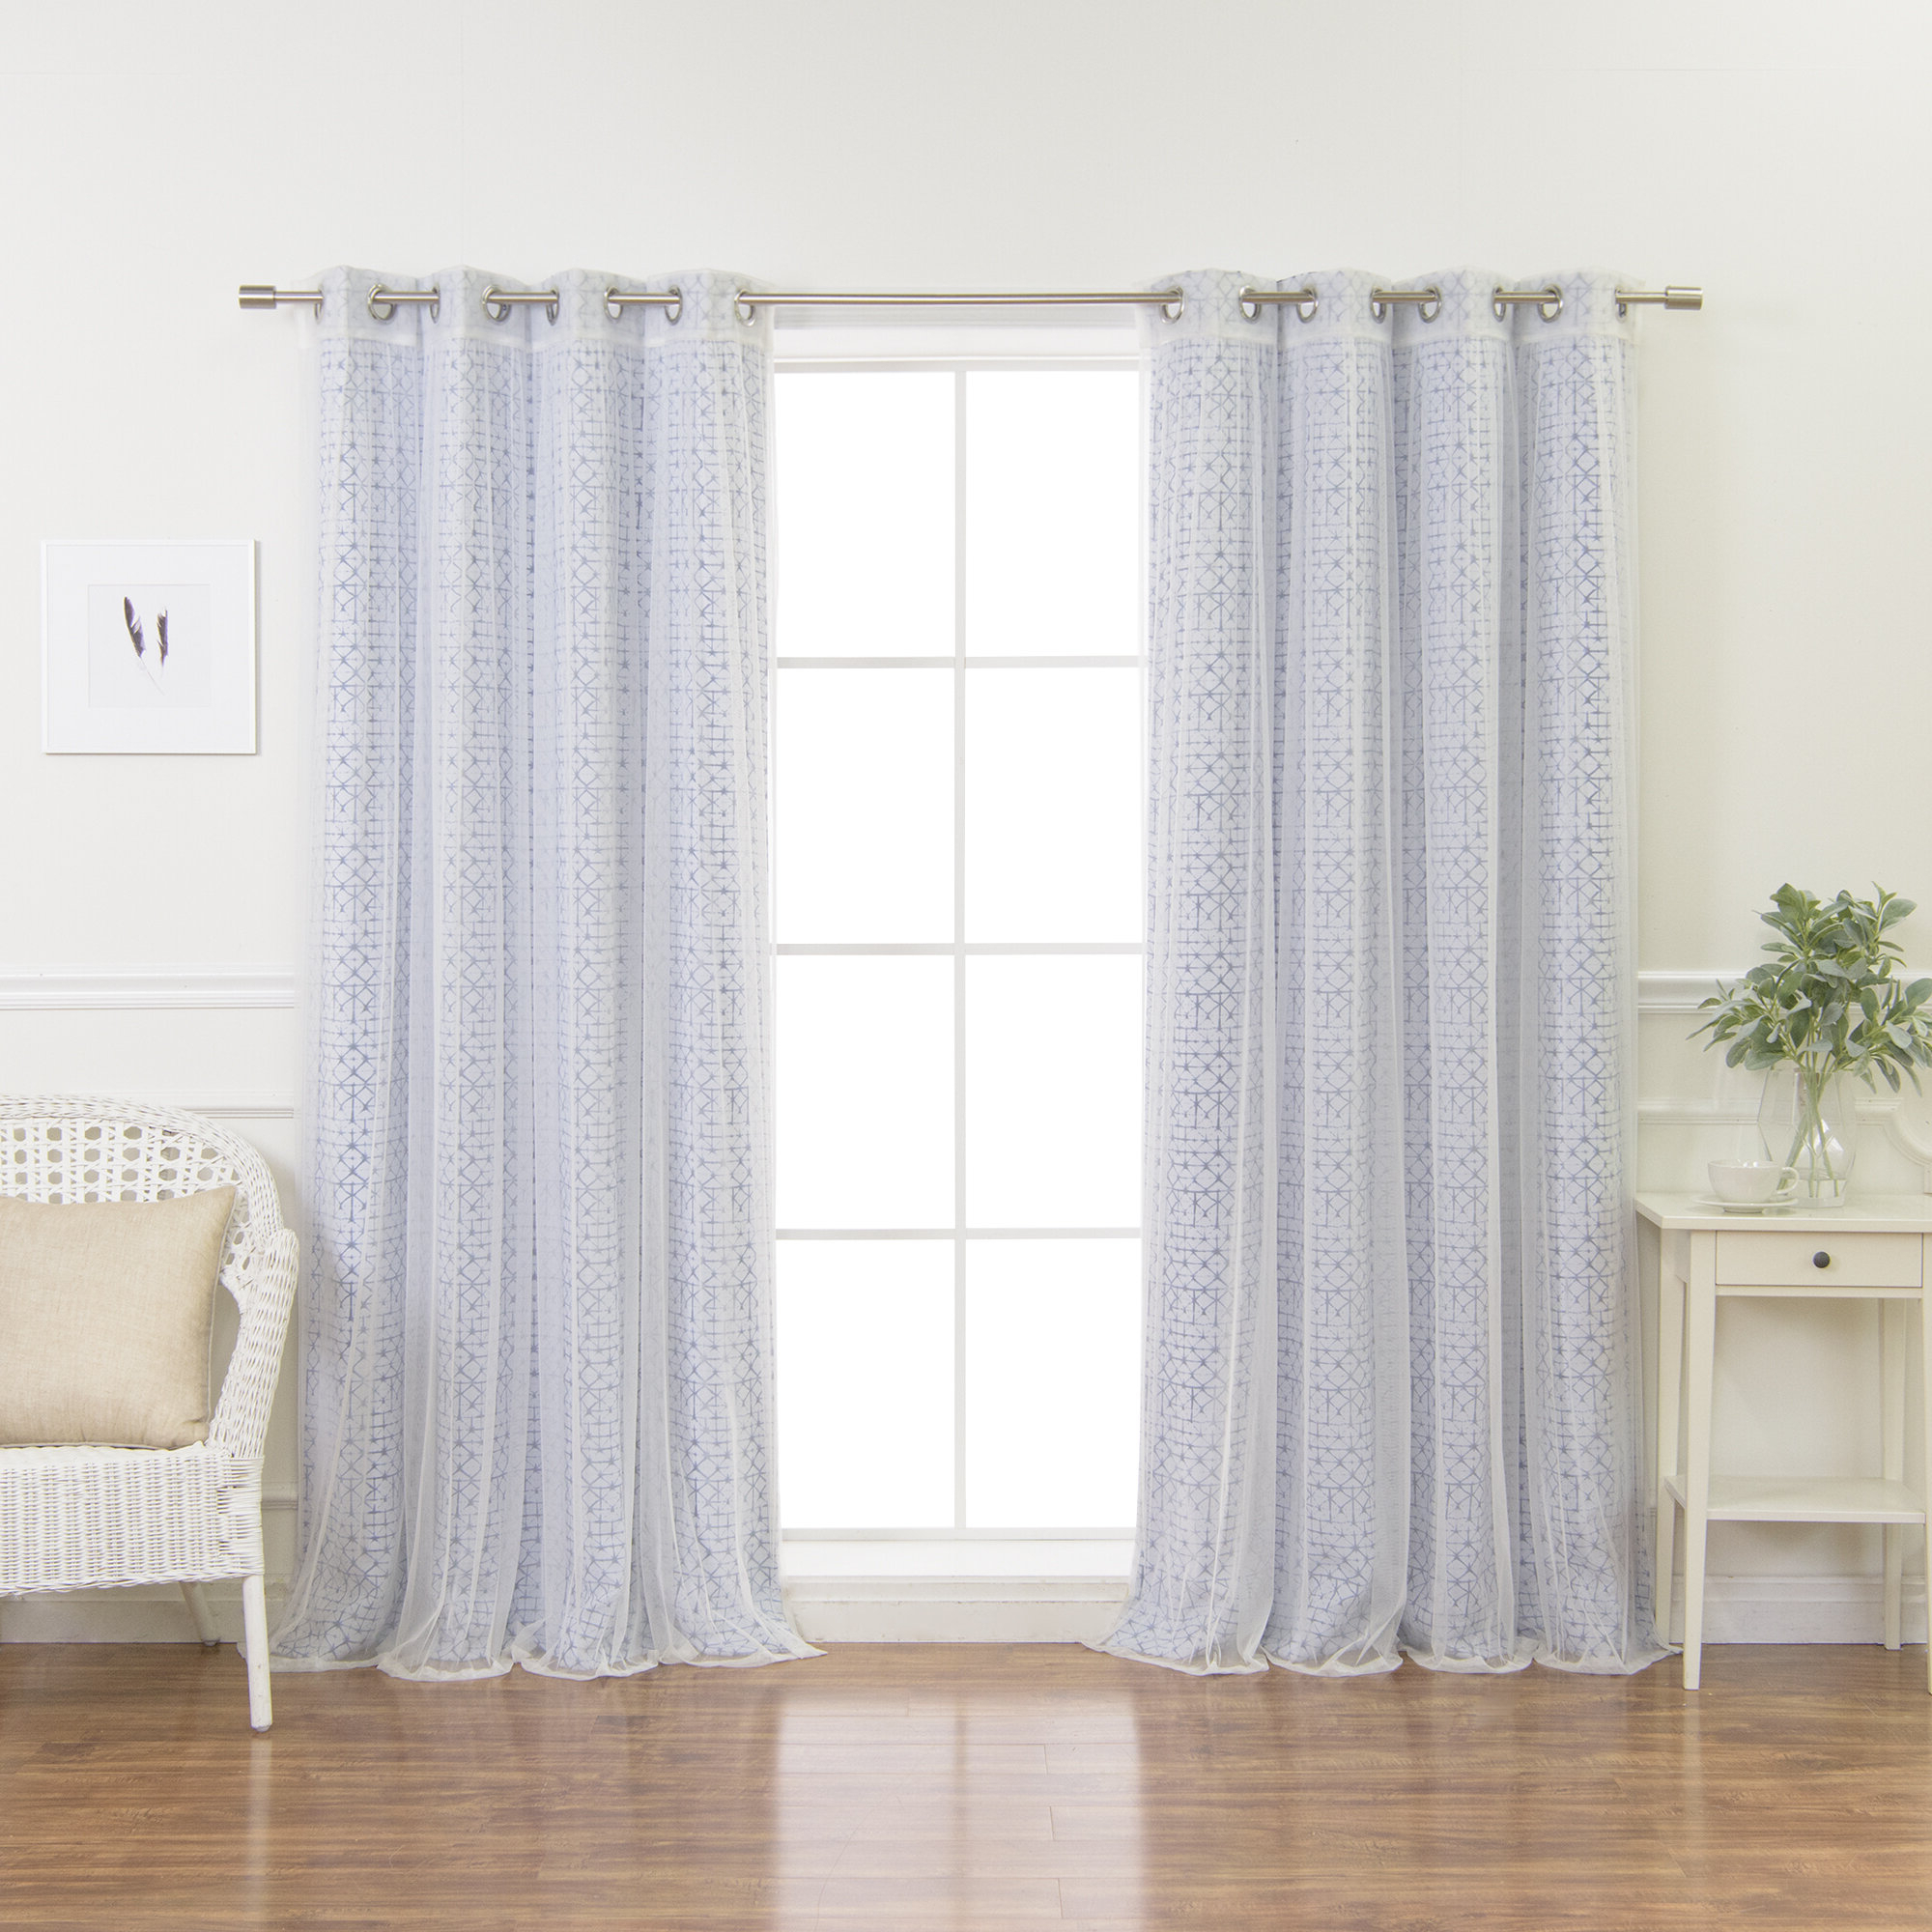 Connolly Tulle And Diamond Shibori Mix And Match Geometric Blackout Thermal Grommet Curtain Panels Regarding Favorite Mix And Match Blackout Blackout Curtains Panel Sets (View 18 of 20)